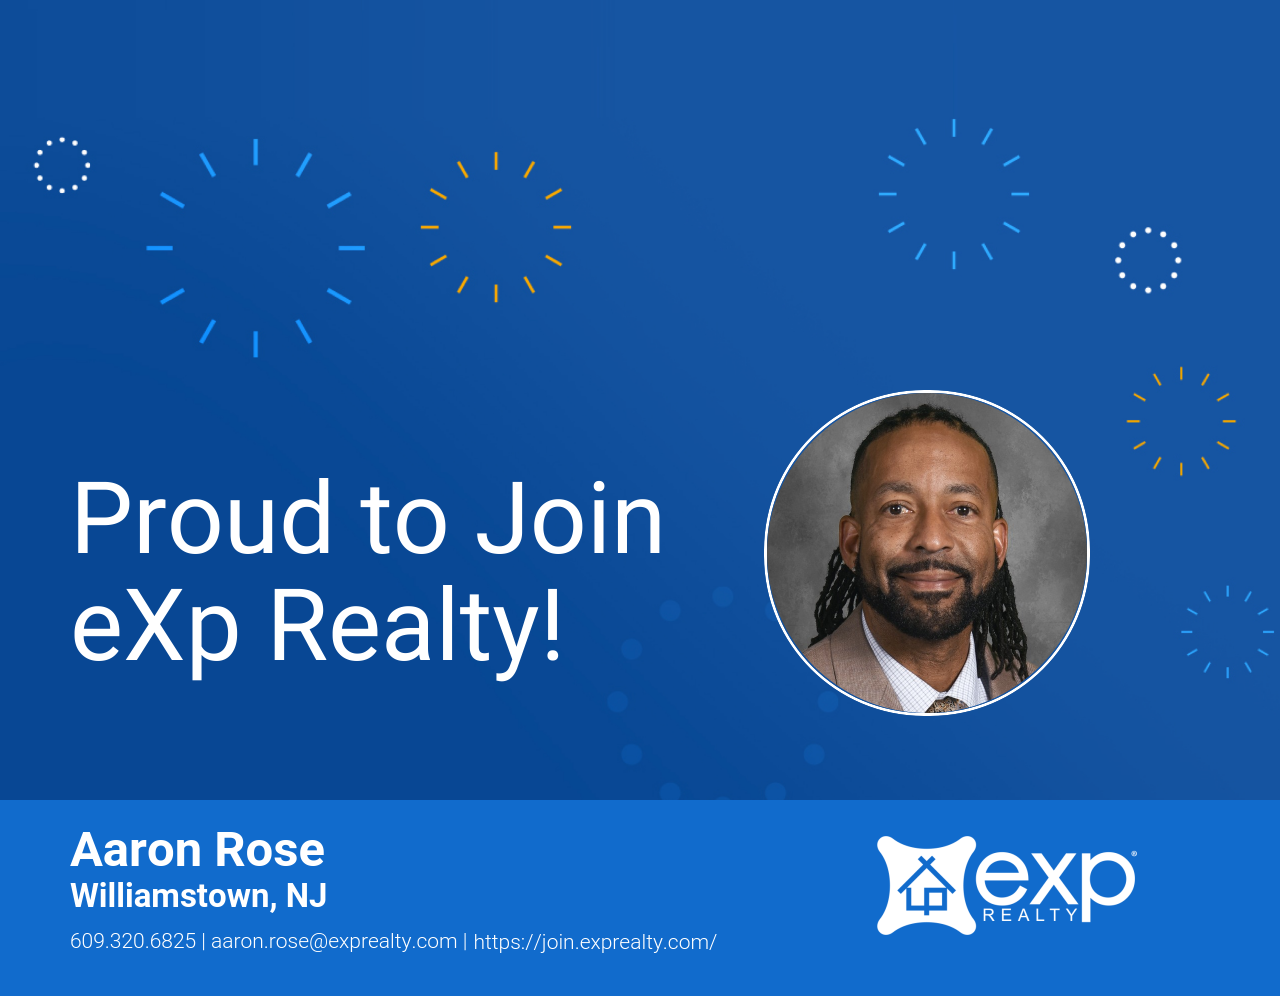 Aaron Rose Joined eXp Realty!